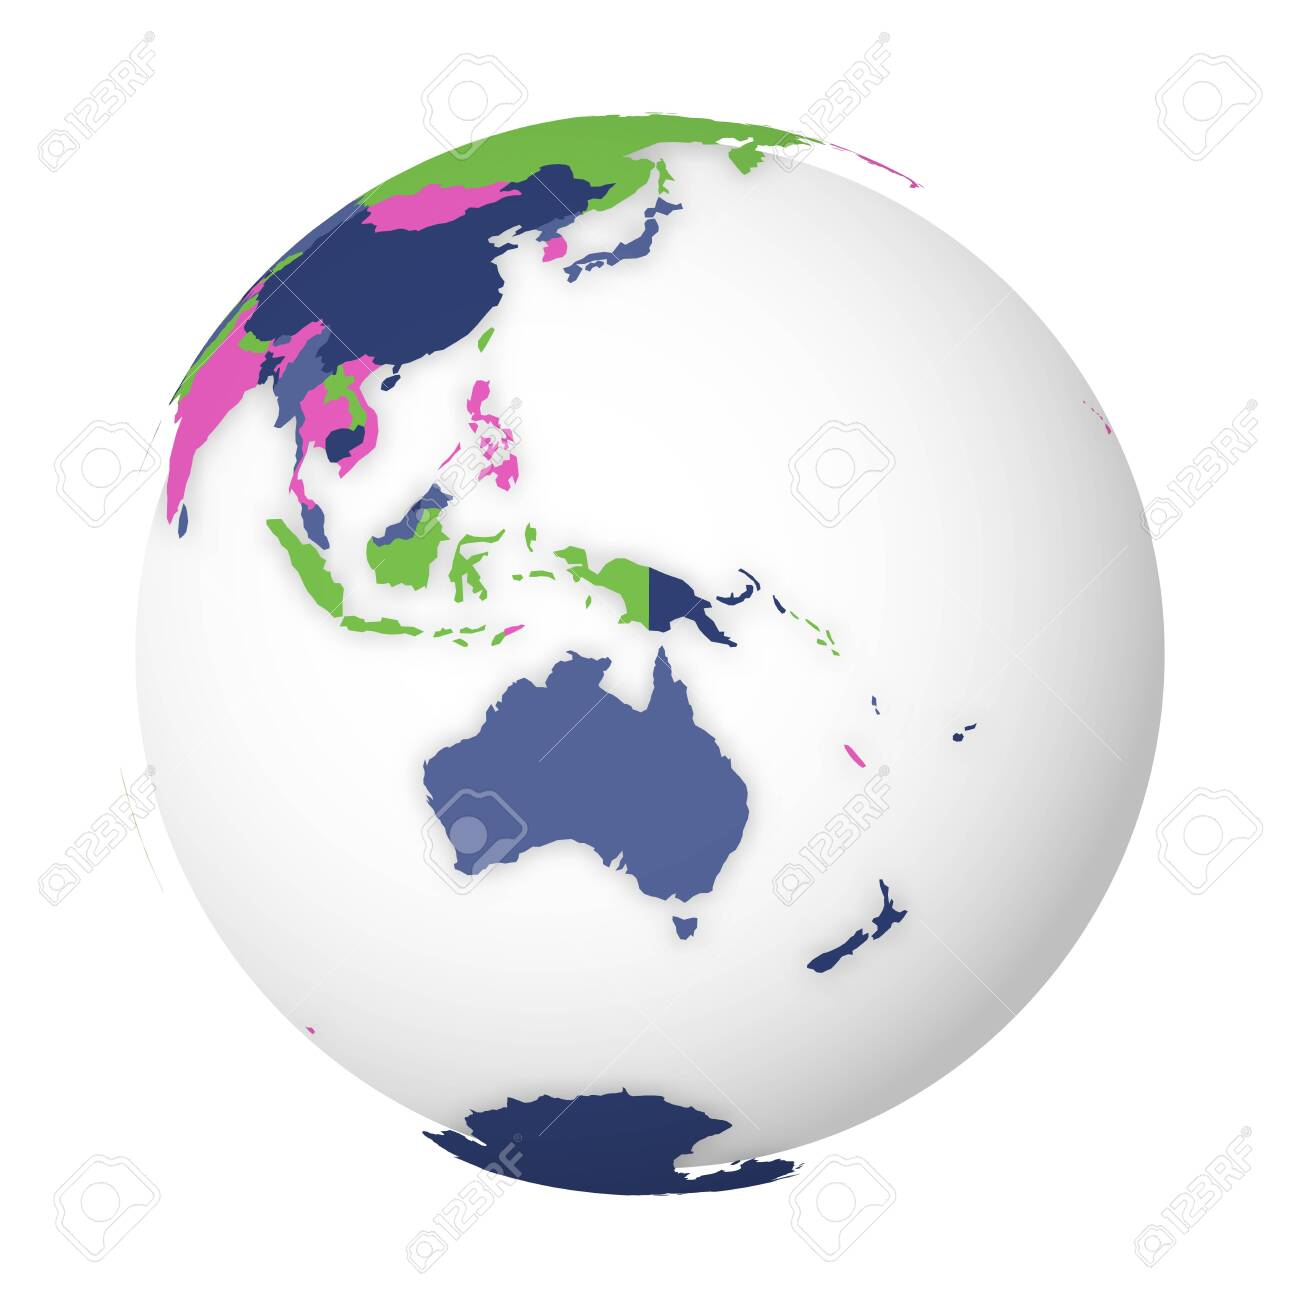 Blank political map of Australia. 3D Earth globe with colored map. Vector illustration. - 142327793